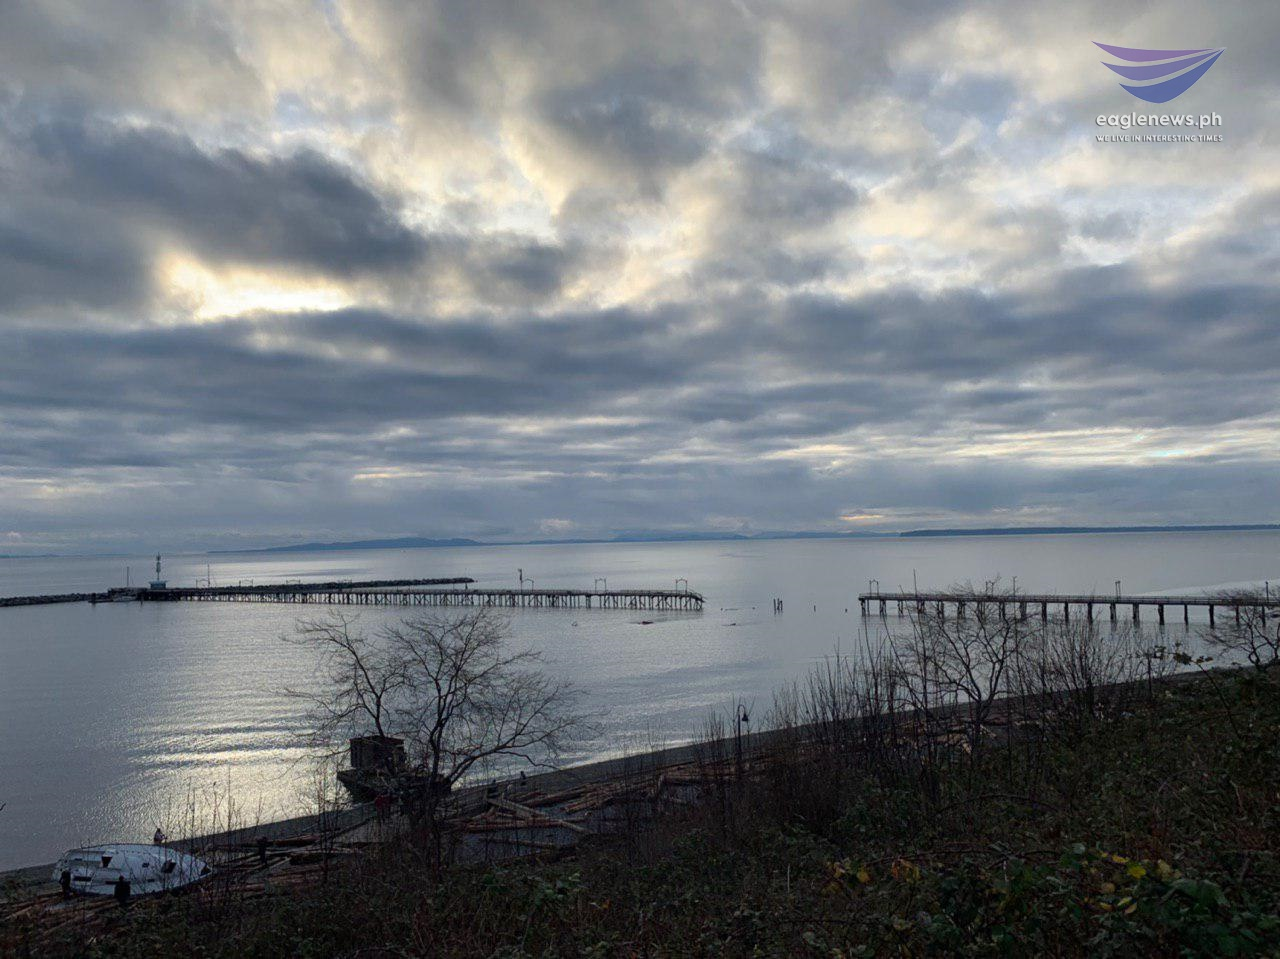 #EBCPhotojournalism:  December storm damages White Rock Pier